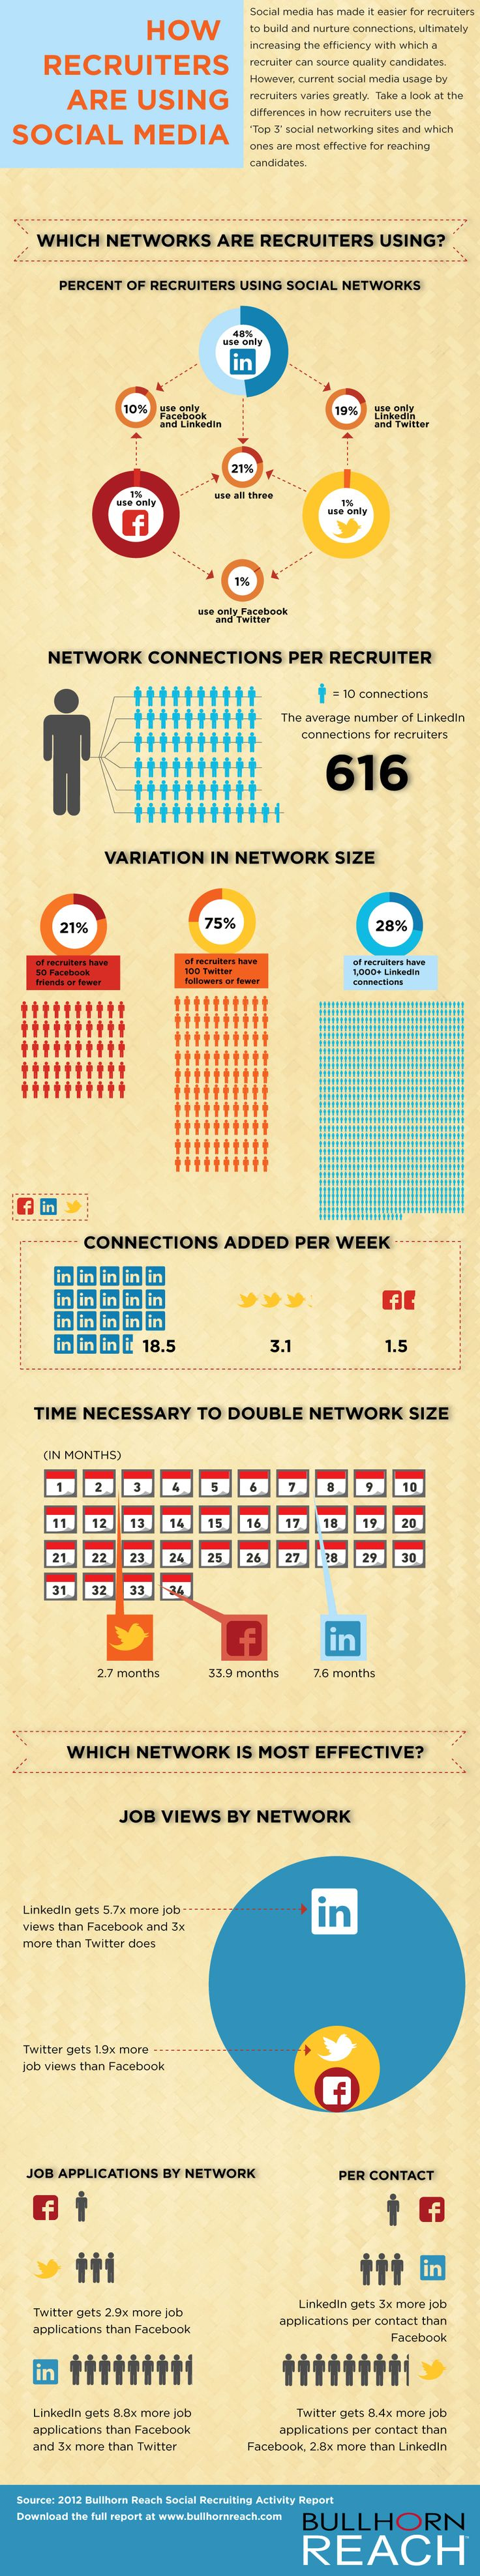 LinkedIn overwhelmingly trumps Facebook and Twitter as the social network recruiters use to search for job candidates